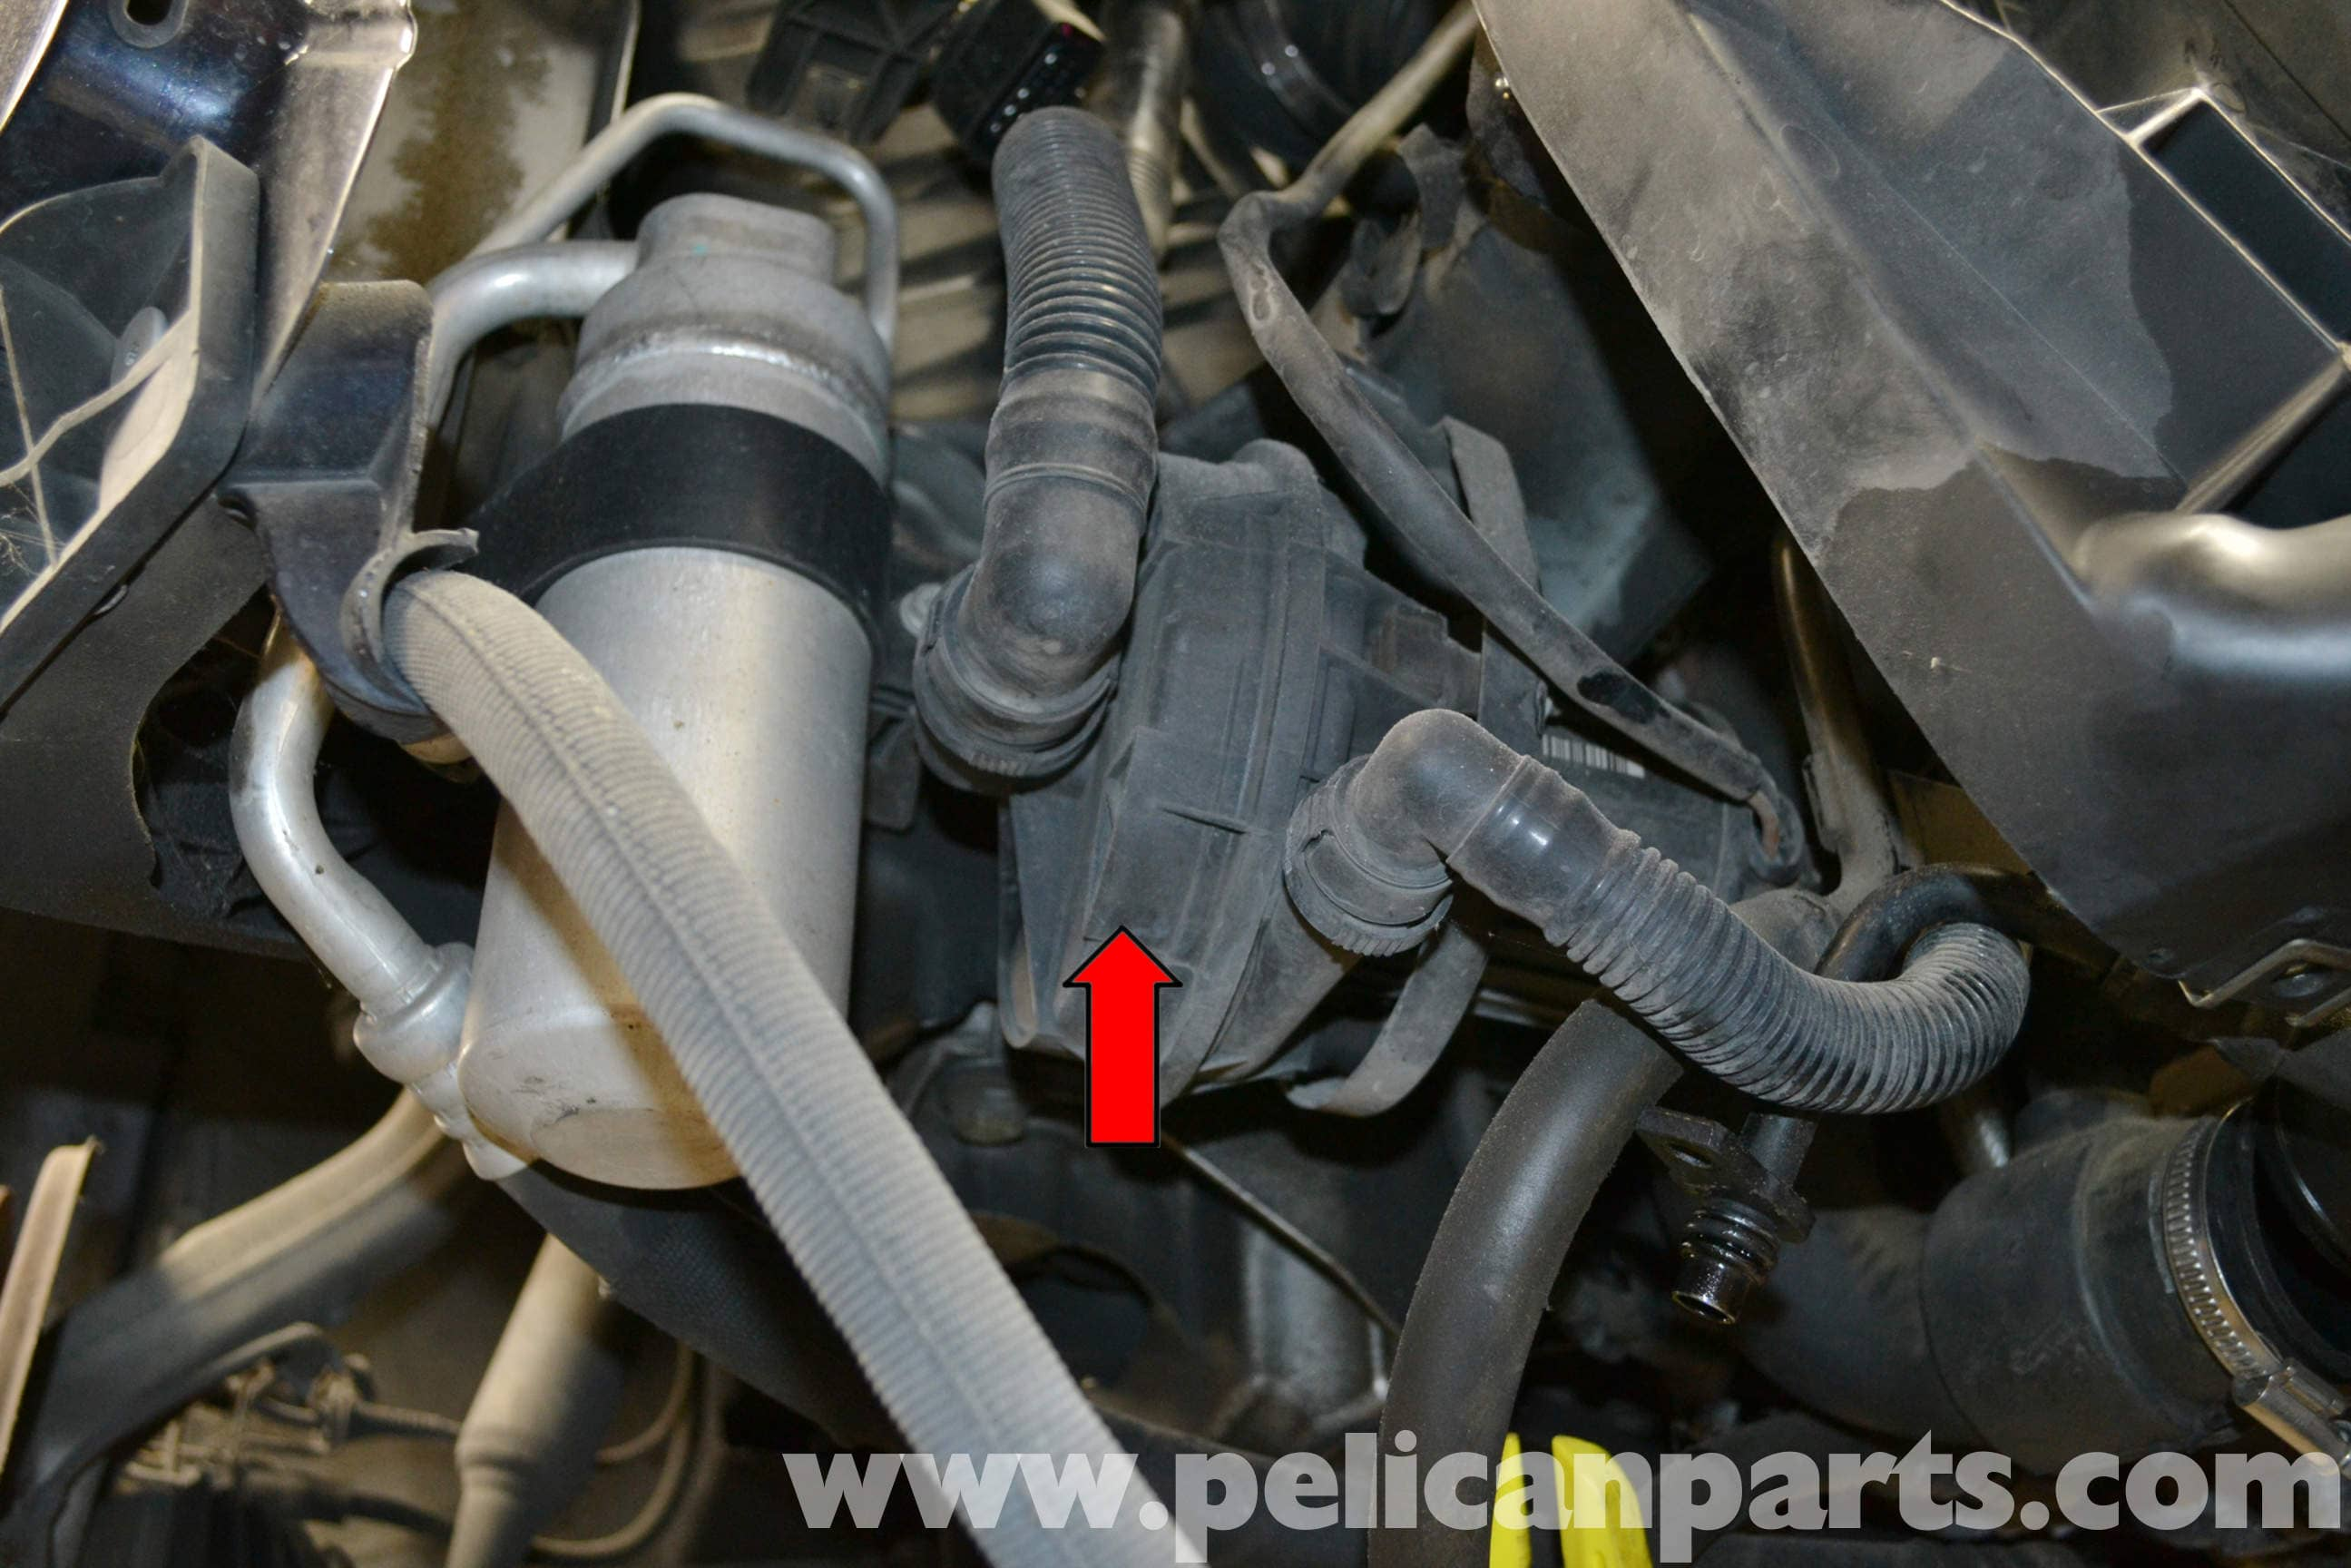 Audi A4 B6 Auxiliary Air Pump Replacement 2002 2008 Pelican 2005 Fuse Box Location Large Image Extra